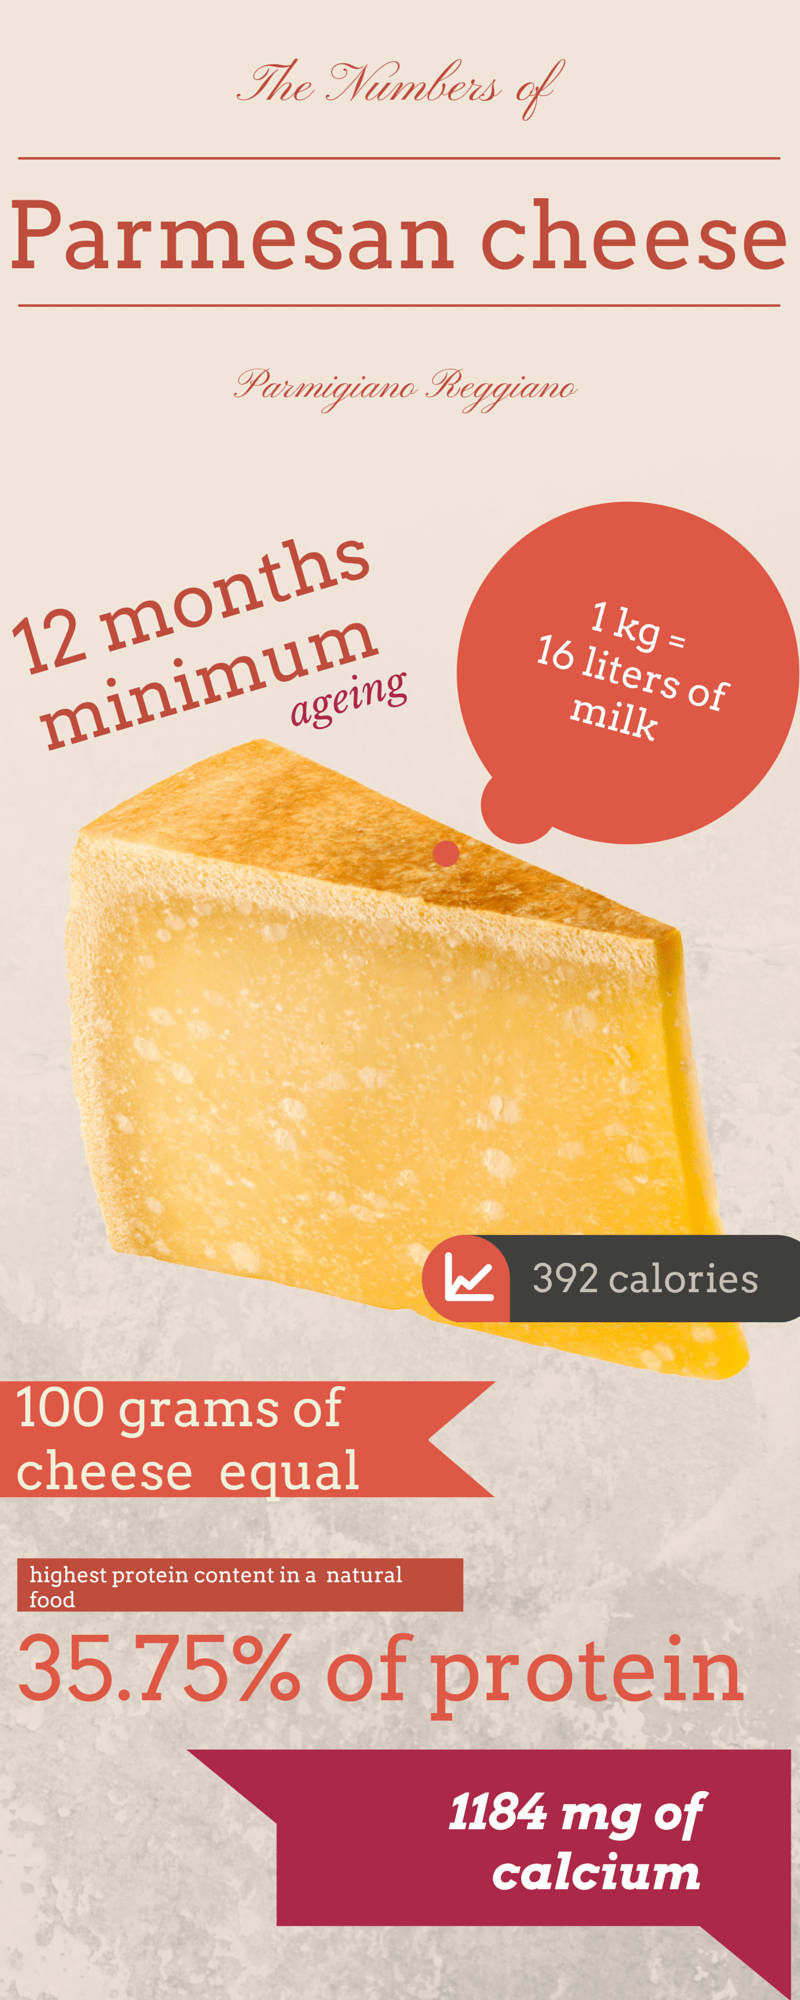 Parmesan cheese infographic